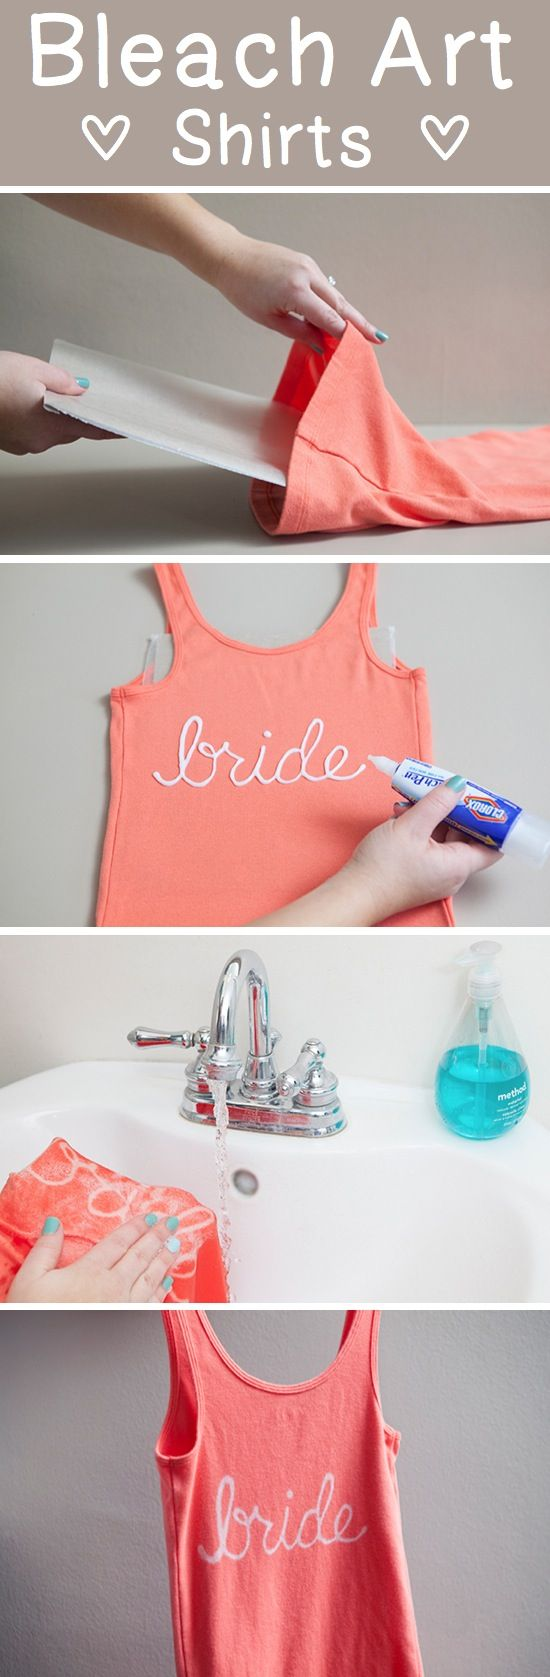 Use a Clorox Bleach Pen to make your own shirt designs!